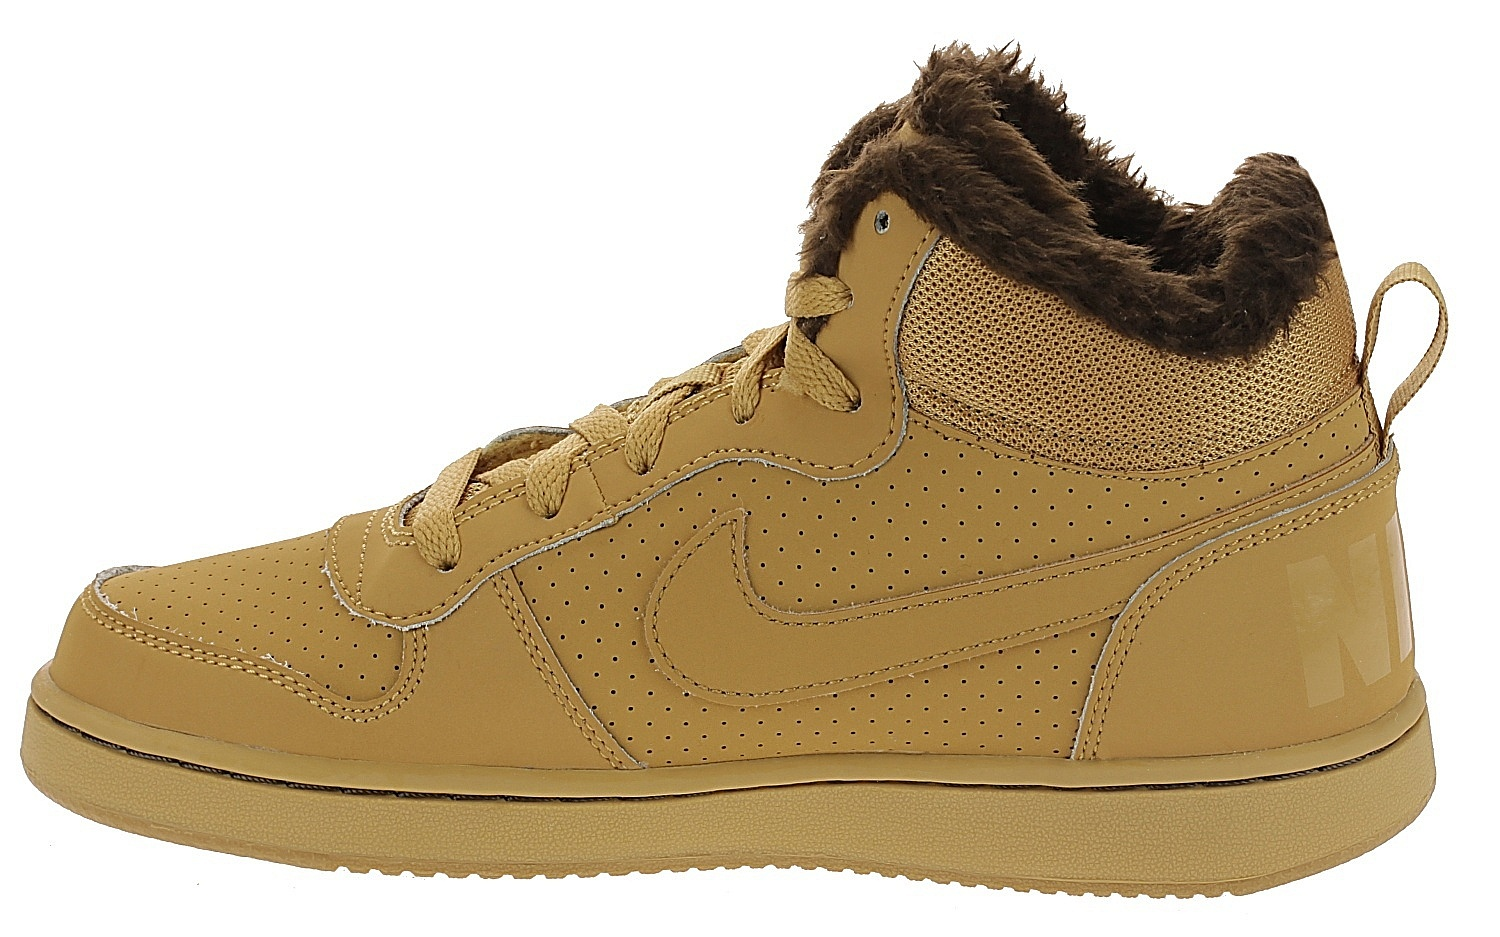 fda3b070363a ... shoes Nike Court Borough MID Winter GS - Haystack Haystack Barooque  Brown - unisex ...